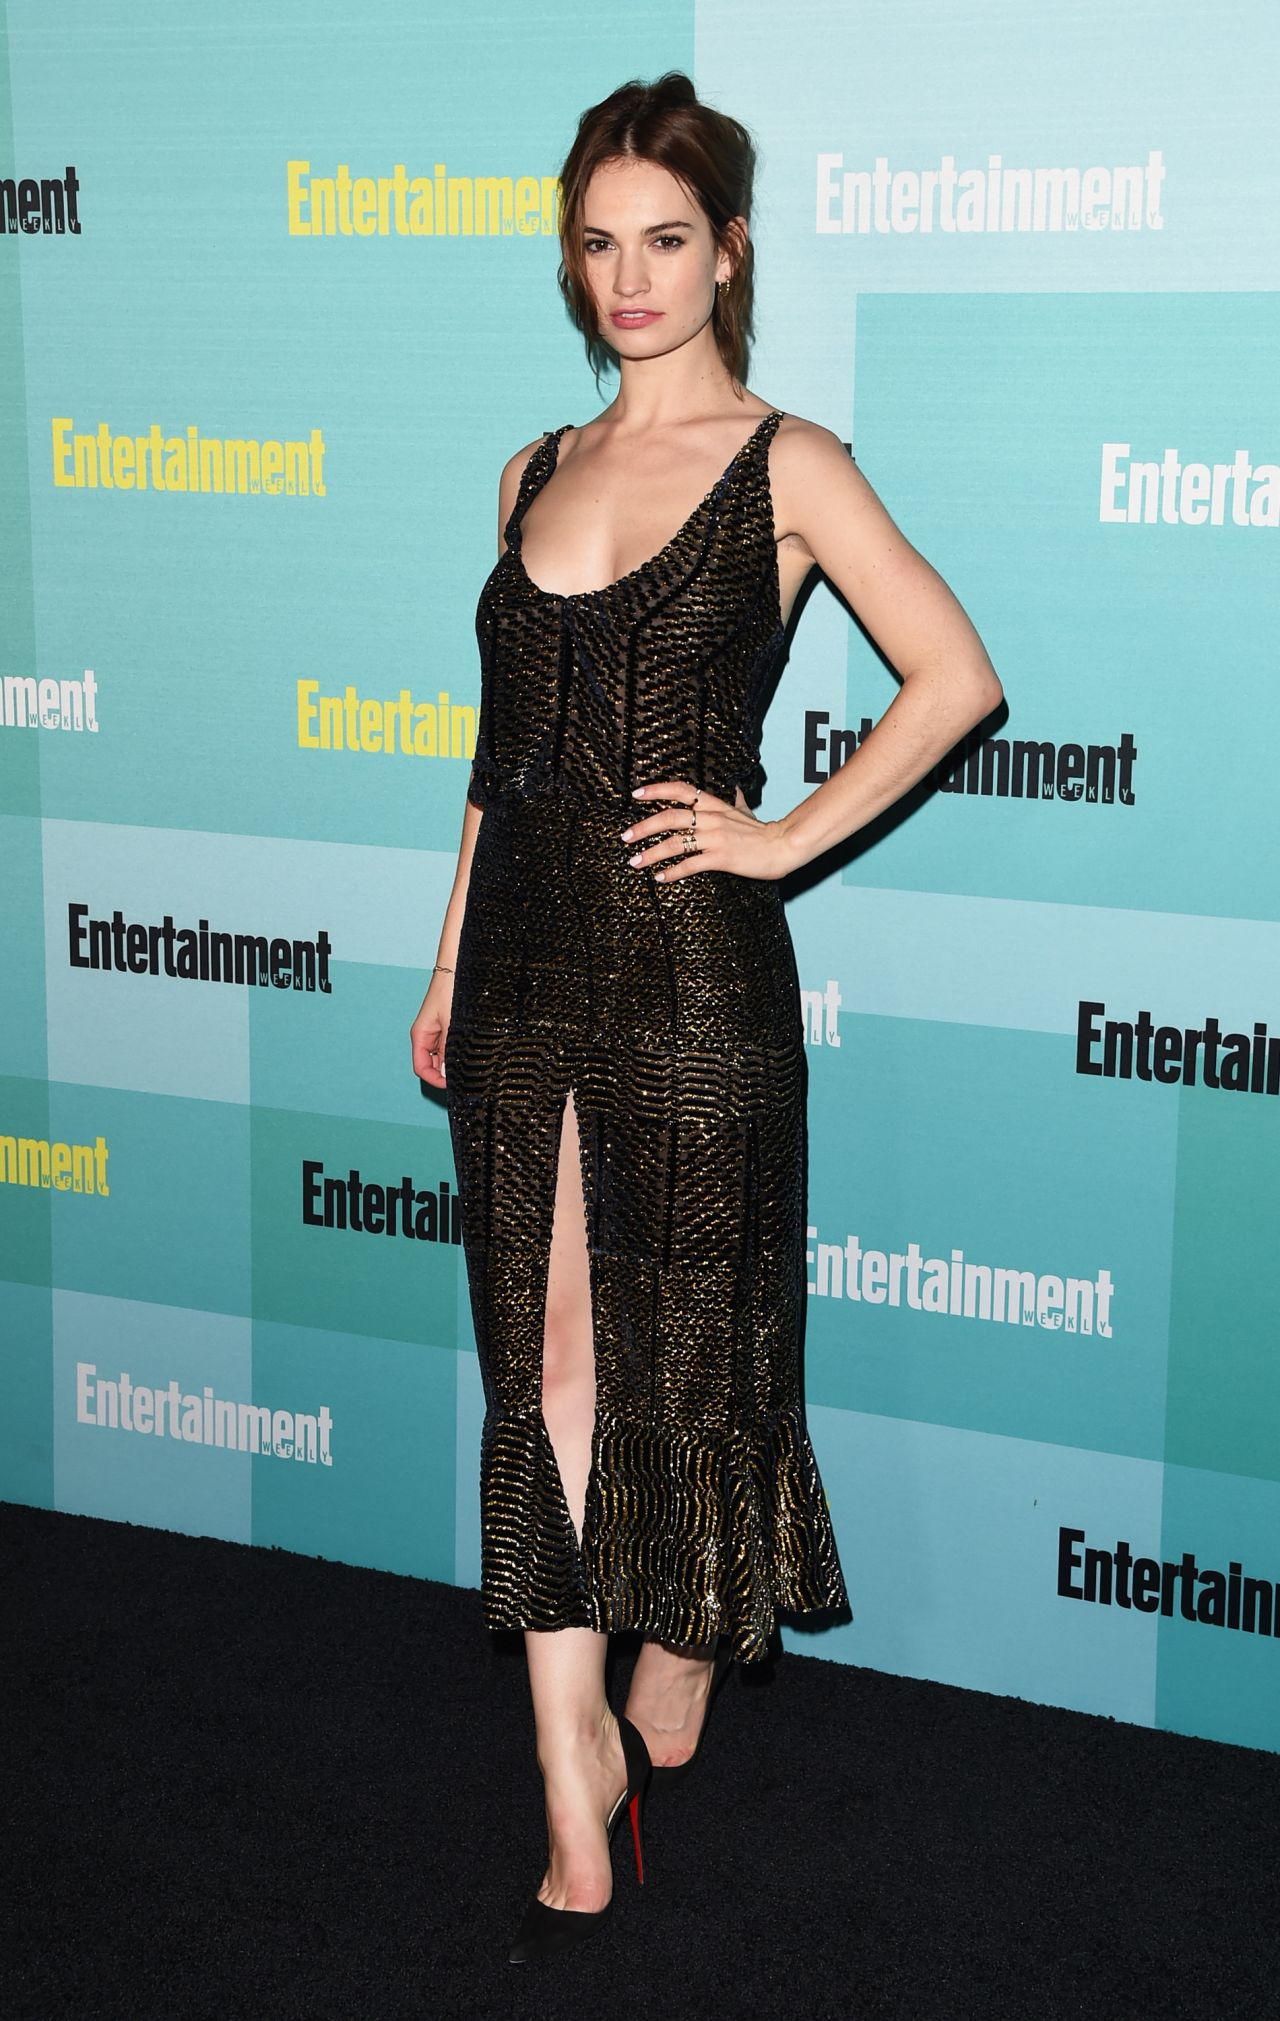 lily-james-entertainment-weekly-party-at-comic-con-in-san-diego-july-2015_2